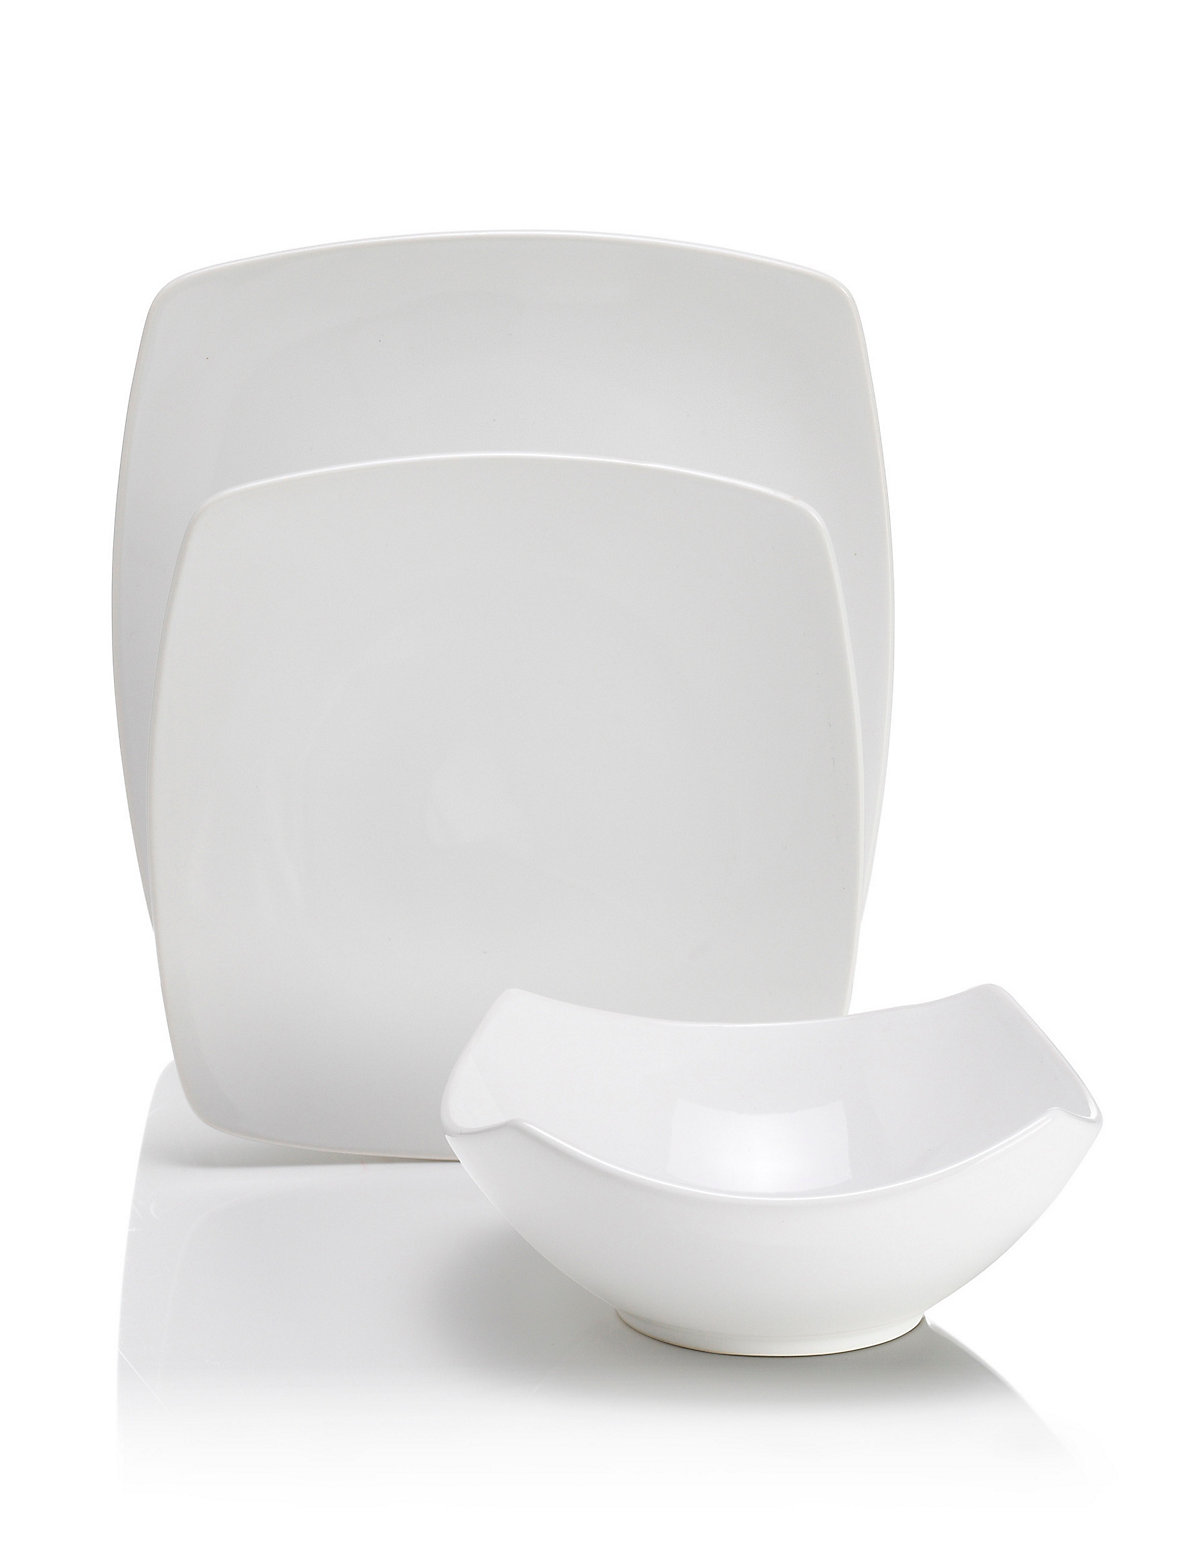 Image of 12 Piece Andante Square Dinner Set